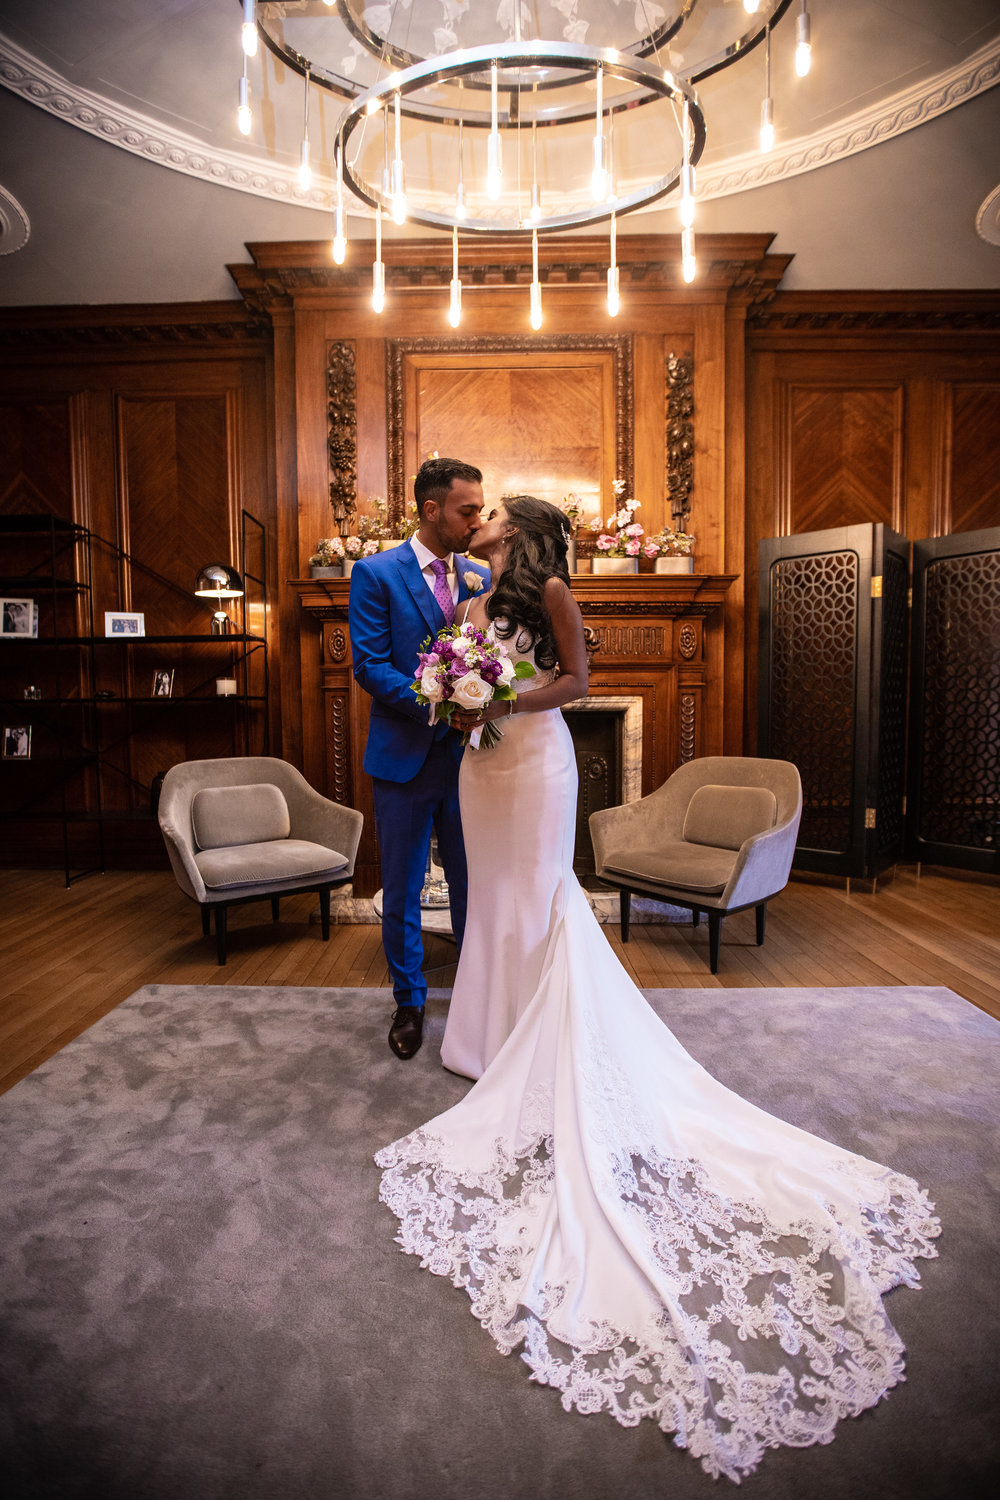 anglo-asian-hindu-civil-wedding-photography-videography-london-portrait-marylebone-old-town-hall-37